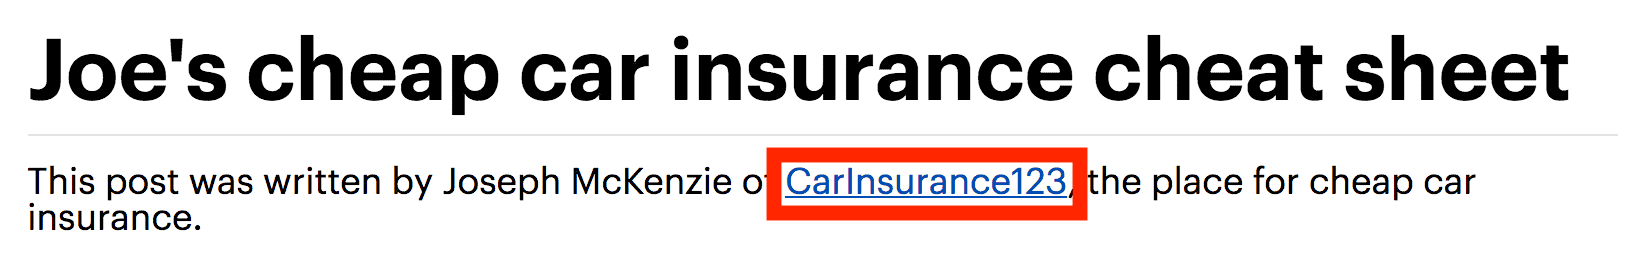 Branded anchor text